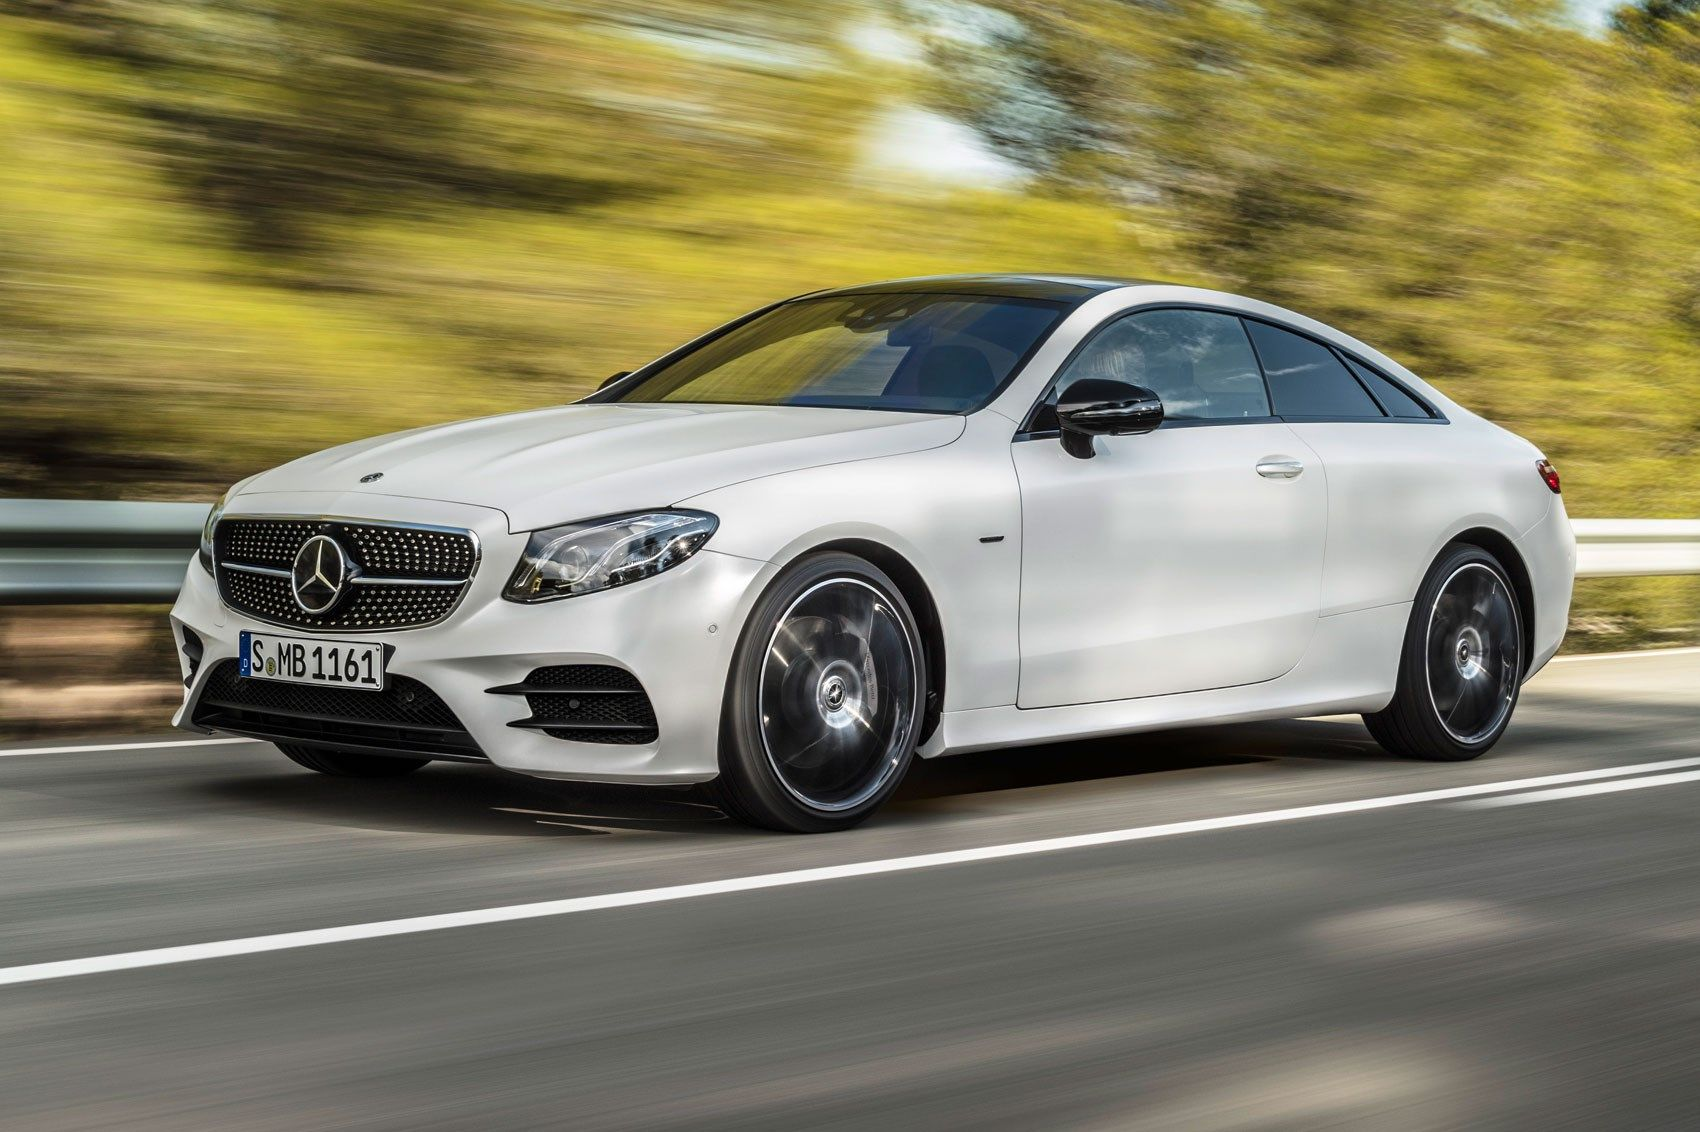 Mercedes E Class Amg 53 Hybrid Engines Arrive This Summer Mercedes E Class Coupe New Model Car Mercedes E Class